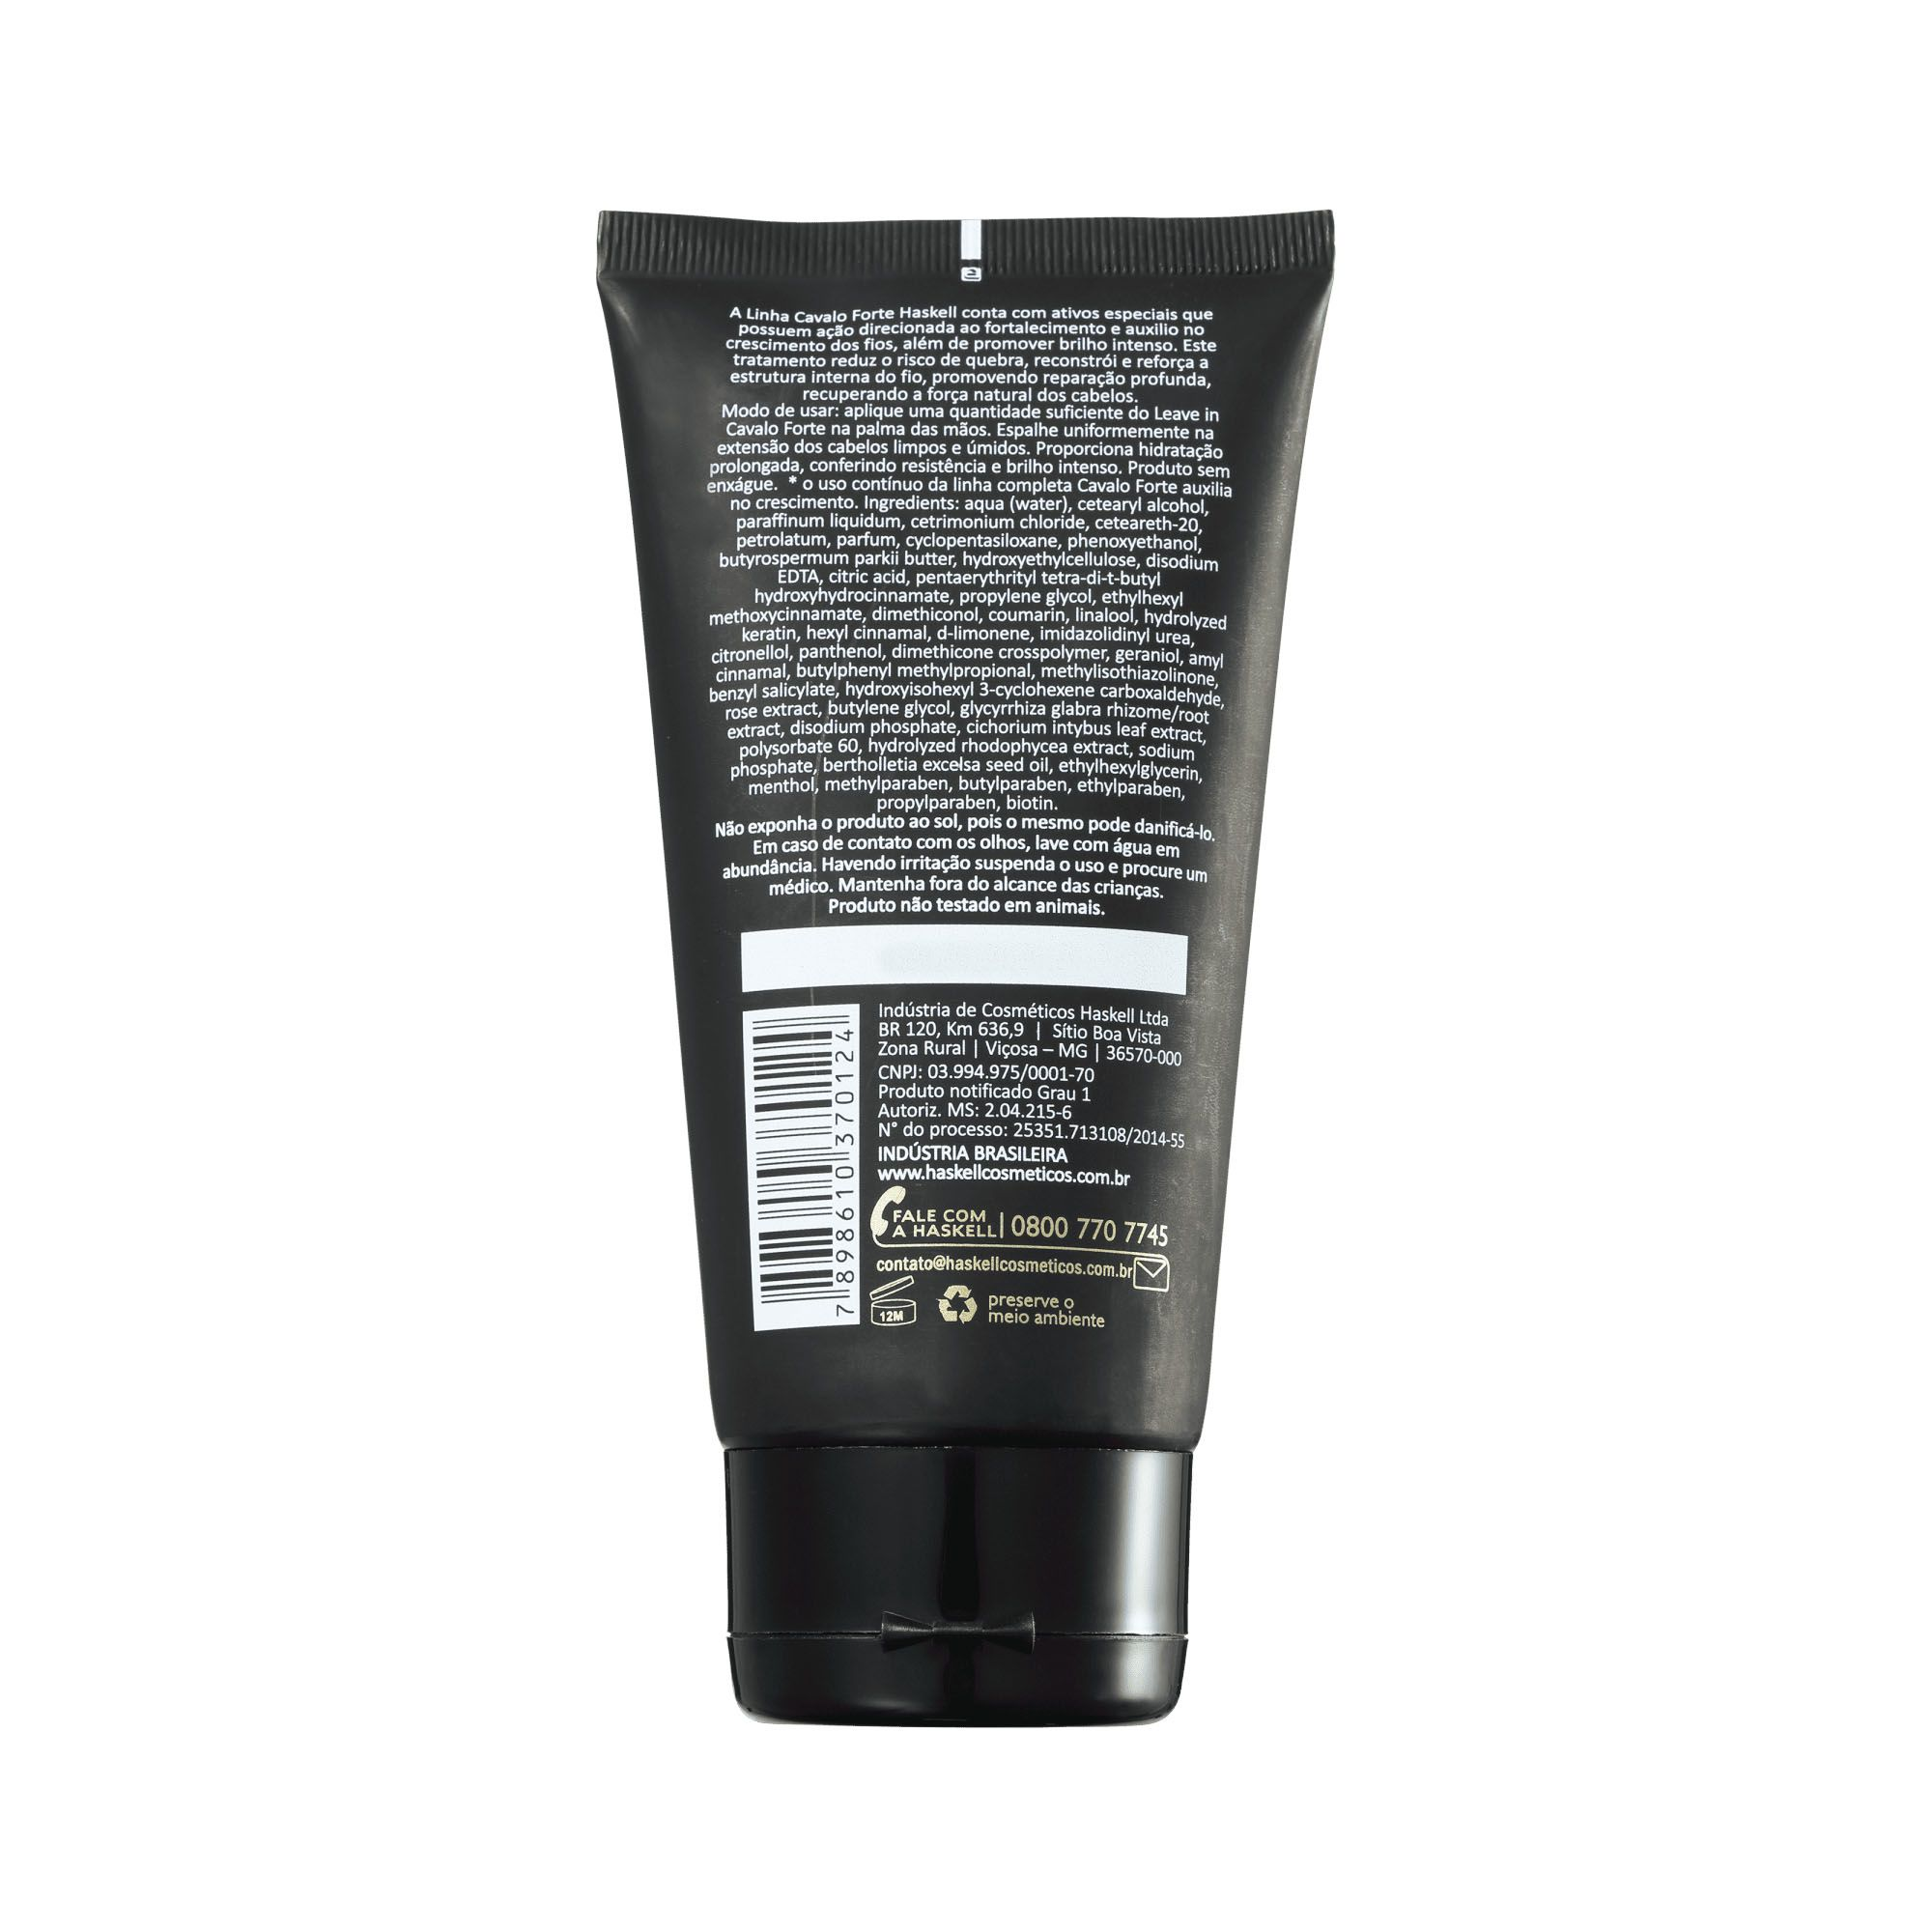 Leave In Cavalo Forte 150g - Haskell